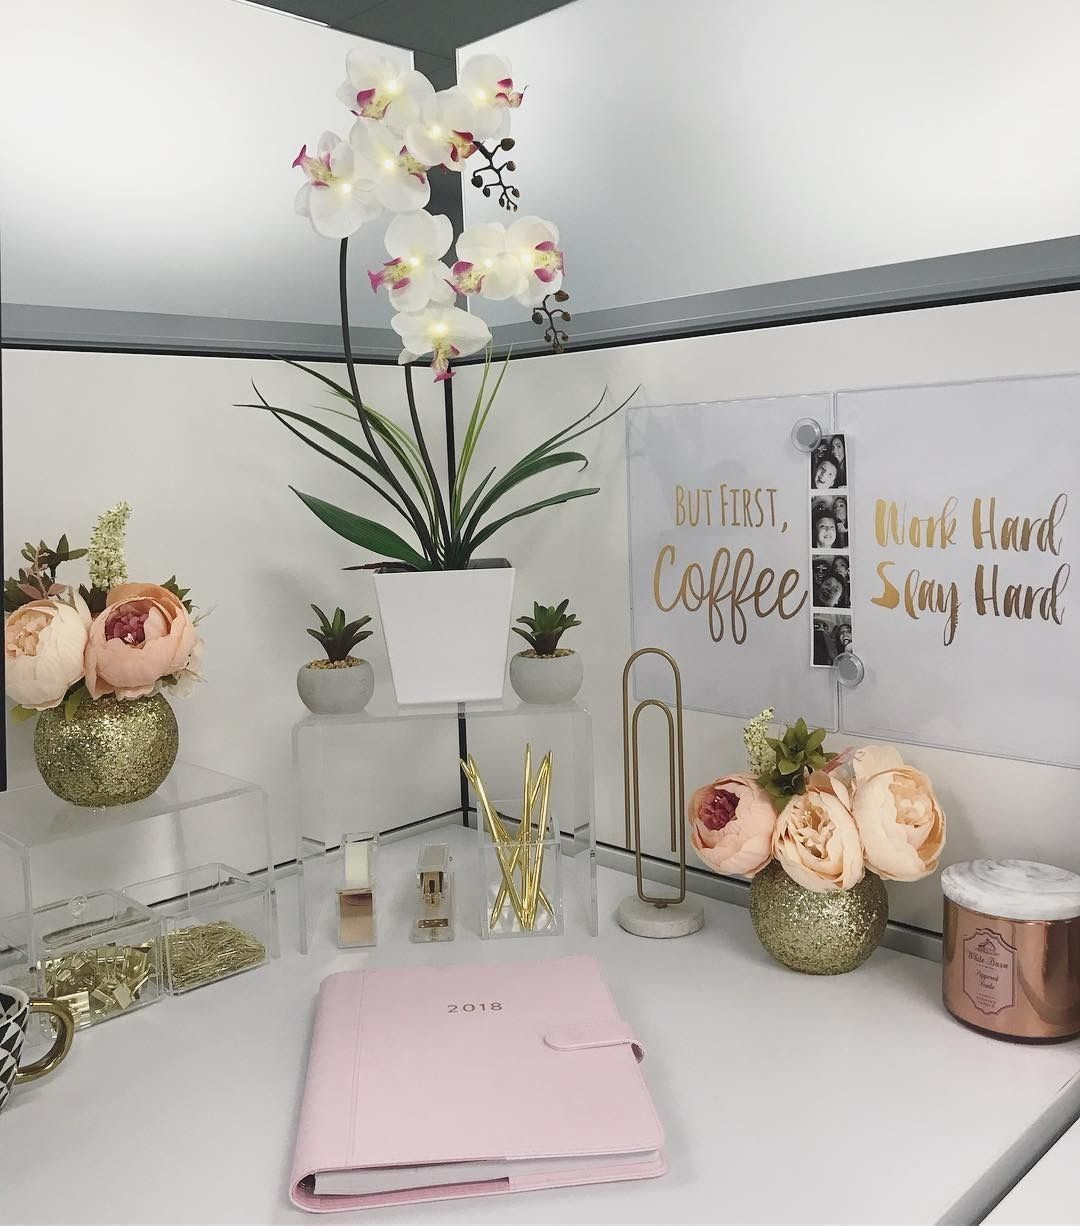 Pin By Debbie Evans On Deco Ideas In 2019: Interior Design Desk Home Decor For Your Home Office Space